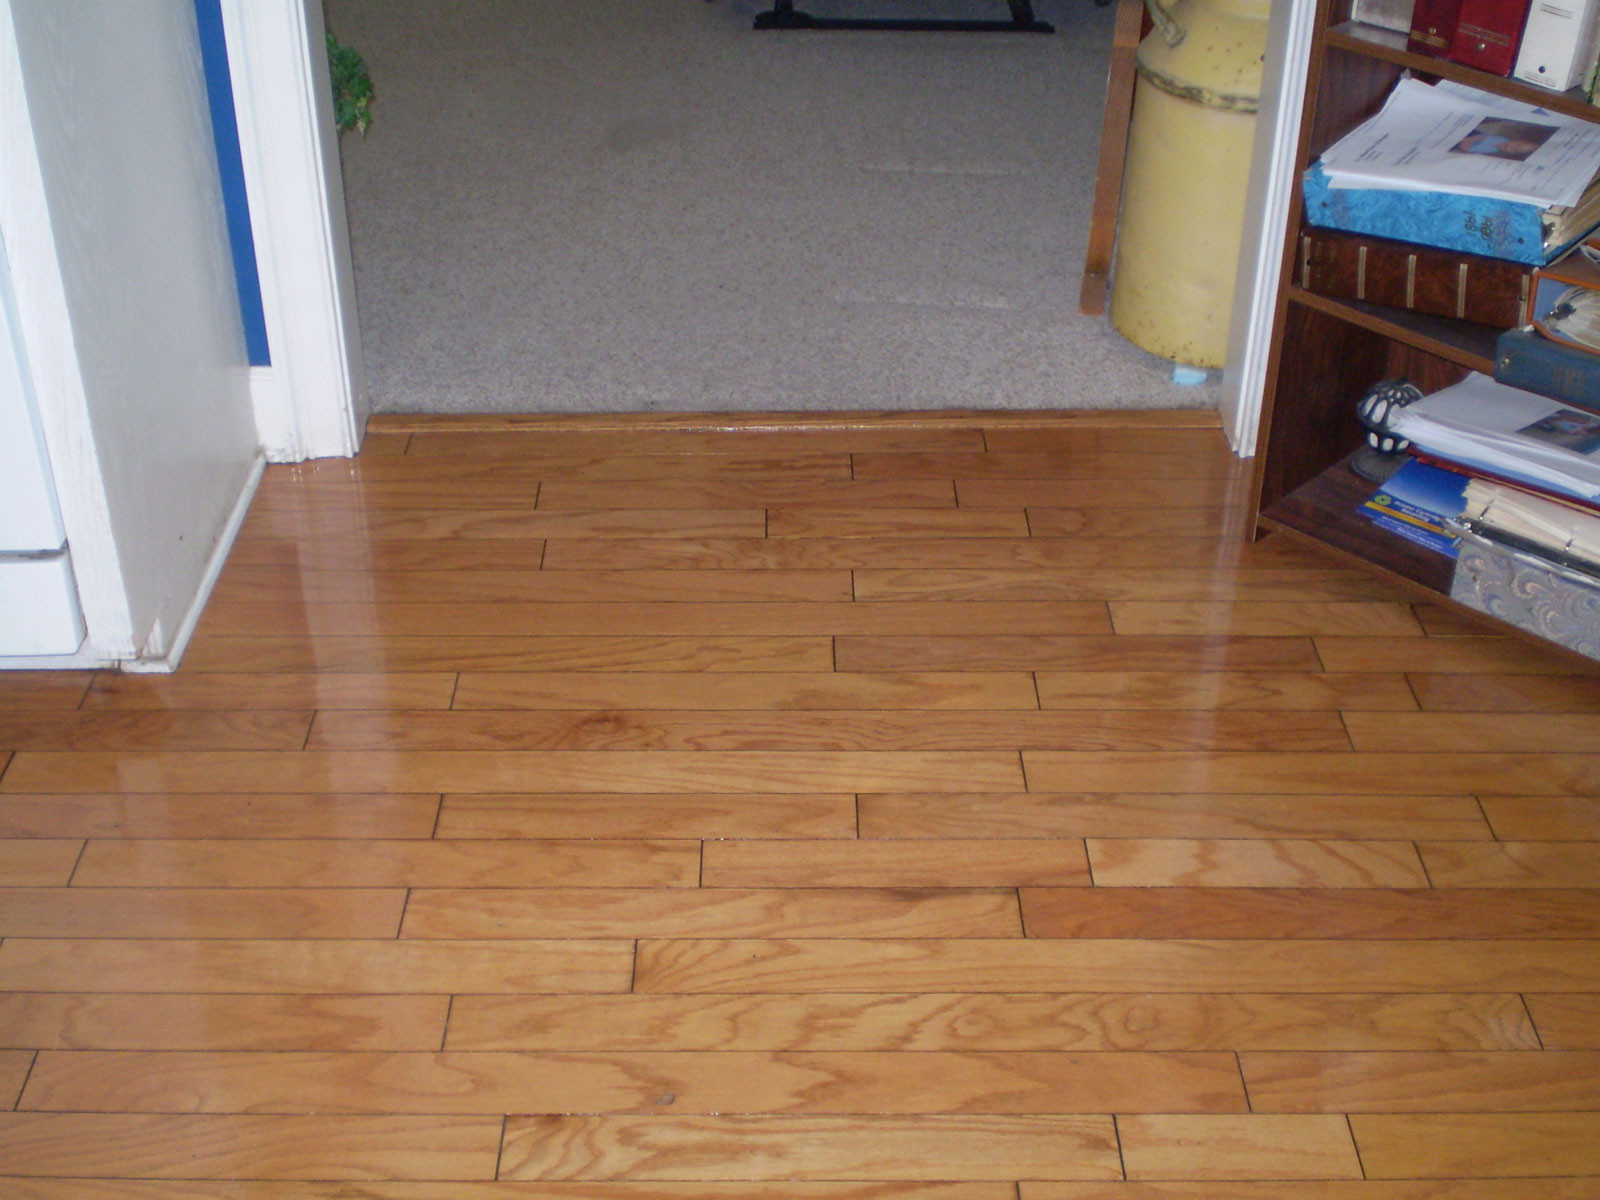 hardwood floor refinishing in maryland of hardwood floor refinishing richmond va 4 white oak hardwood floor with regard to hardwood floor refinishing richmond va will refinishingod floors pet stains old without sanding wood with